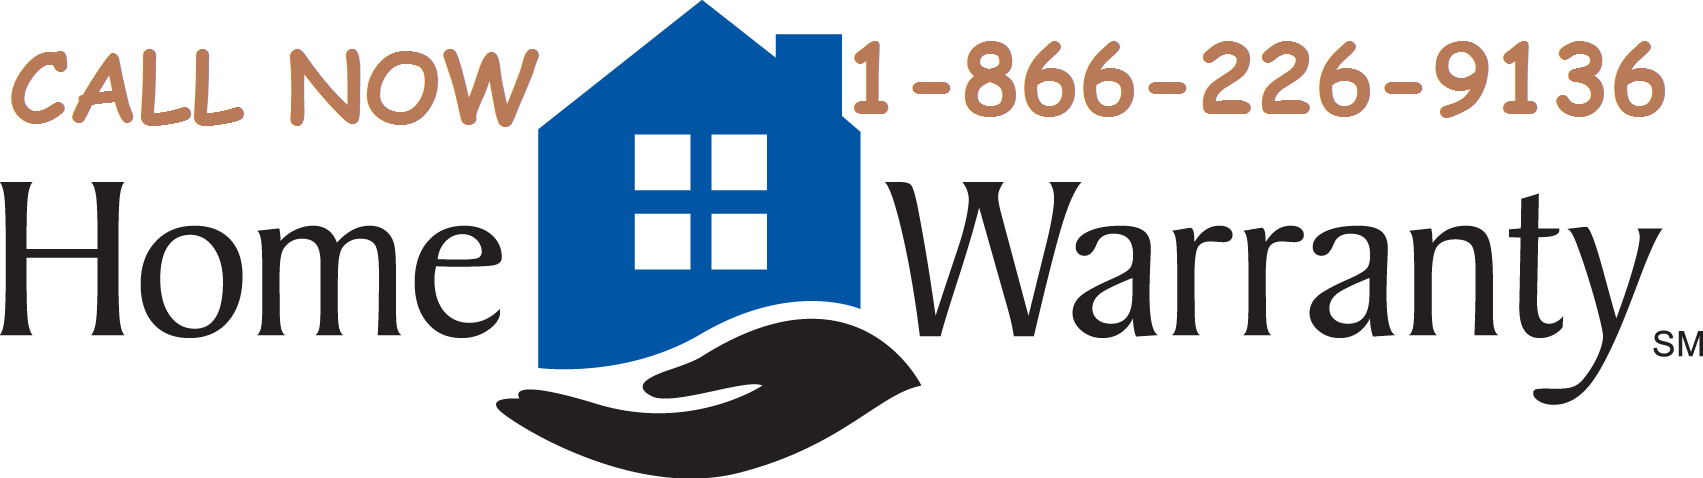 Affordable Home Warranty with 24x7 Emergency service. Call +1-866-226-9136